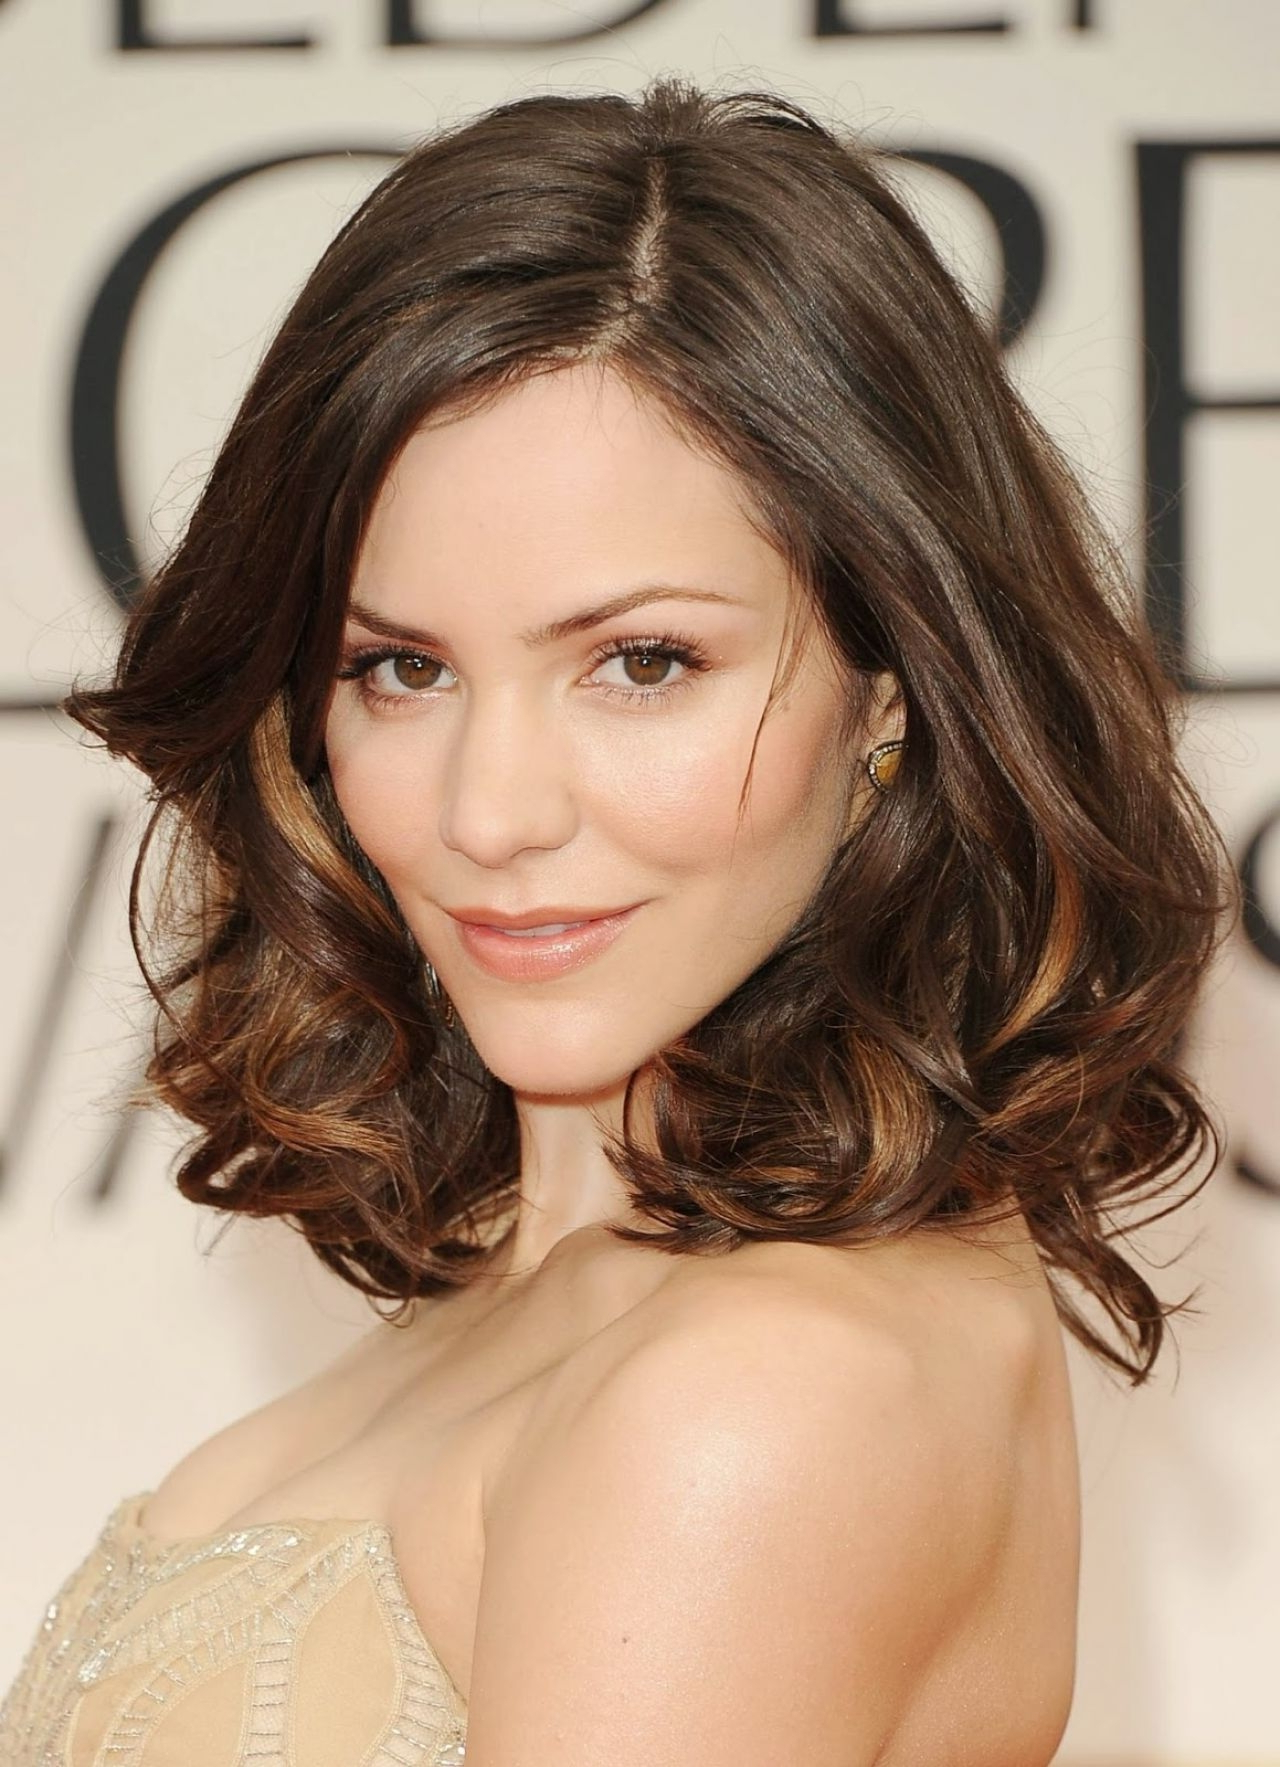 Chic Medium Hairstyles For Fine Curly Hair On Medium Wavy Haircuts Intended For Most Popular Medium Haircuts For Thin Curly Hair (View 6 of 20)